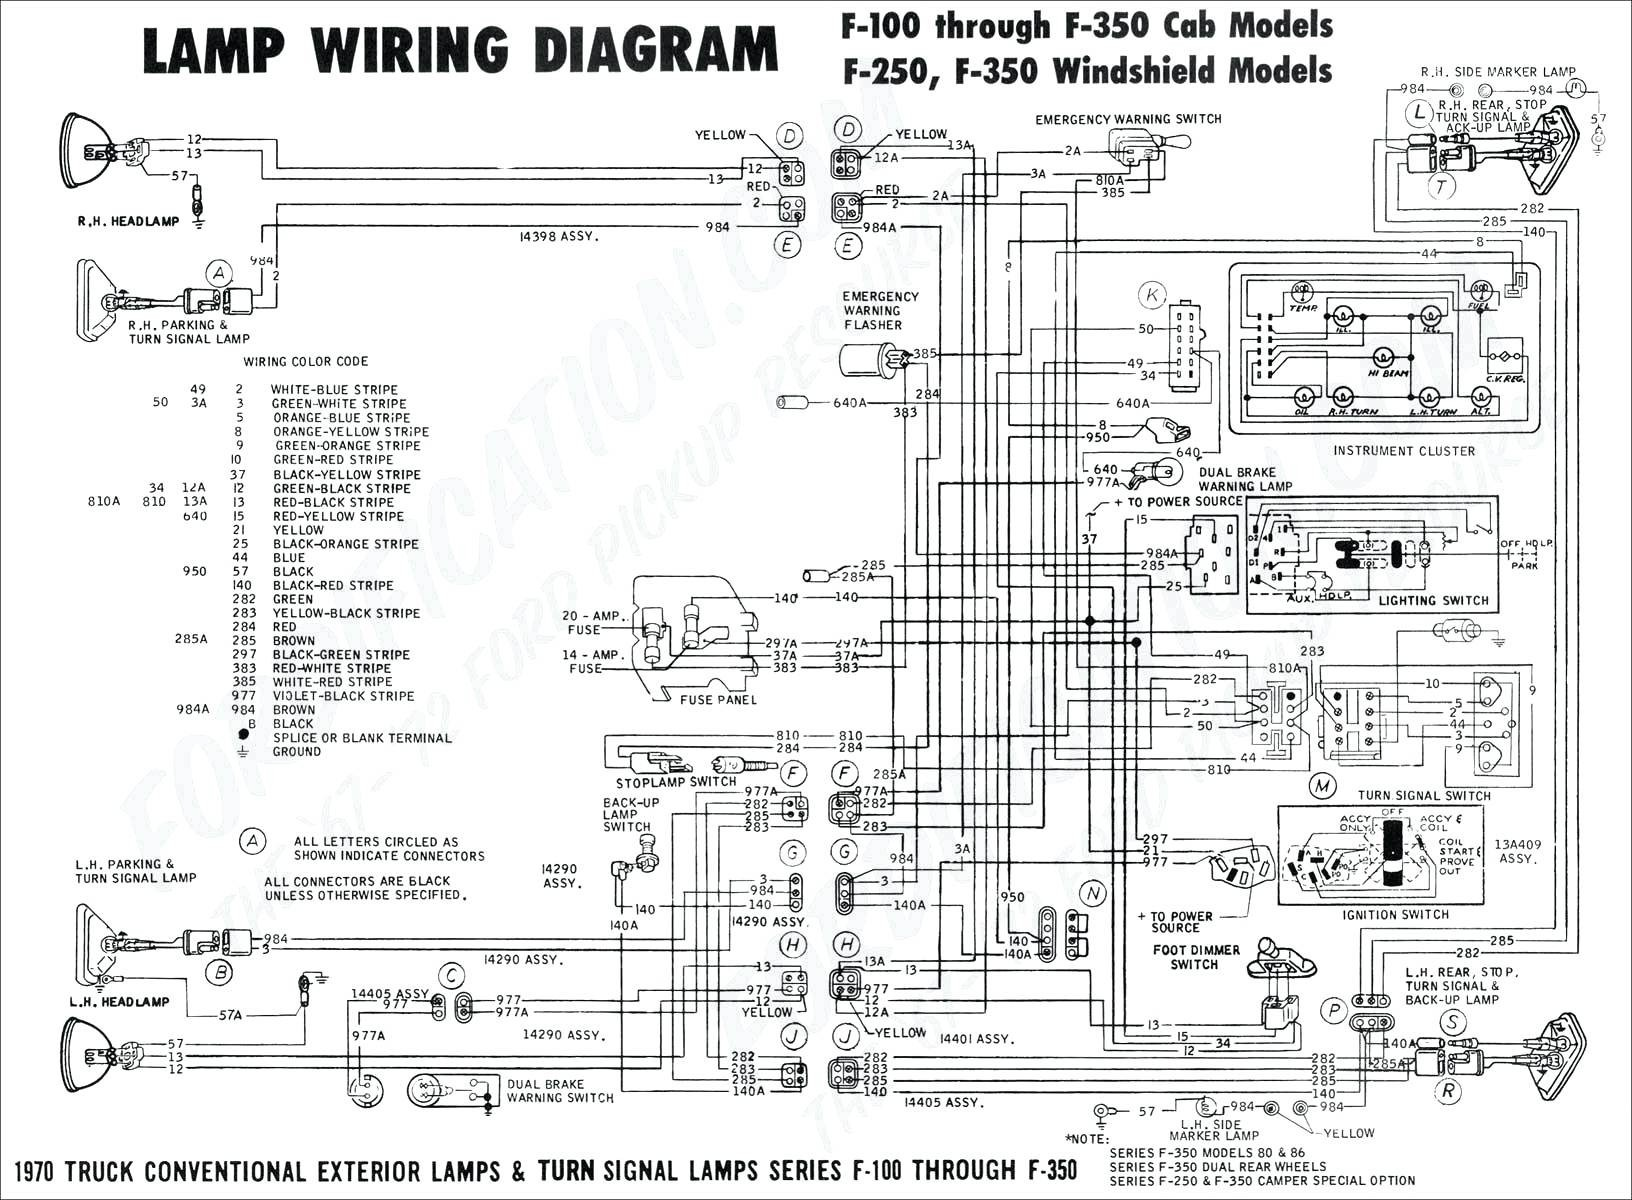 Ford F53 Chis Wiring Schematic | Wiring Diagram F Motorhome Wiring Diagram on motorhome brands, motorhome trailer, rv inverter installation diagrams, motorhome brochure, motorhome repair, motorhome painting, motorhome drawings, motorhome leveling jacks, motorhome parts, motorhome water systems diagrams, motorhome layouts, motorhome blueprints, motorhome accessories, motorhome replacement windows, motorhome on water, motorhome electrical systems, motorhome plumbing diagram, motorhome tires 22.5, motorhome inspection checklist, motorhome art,